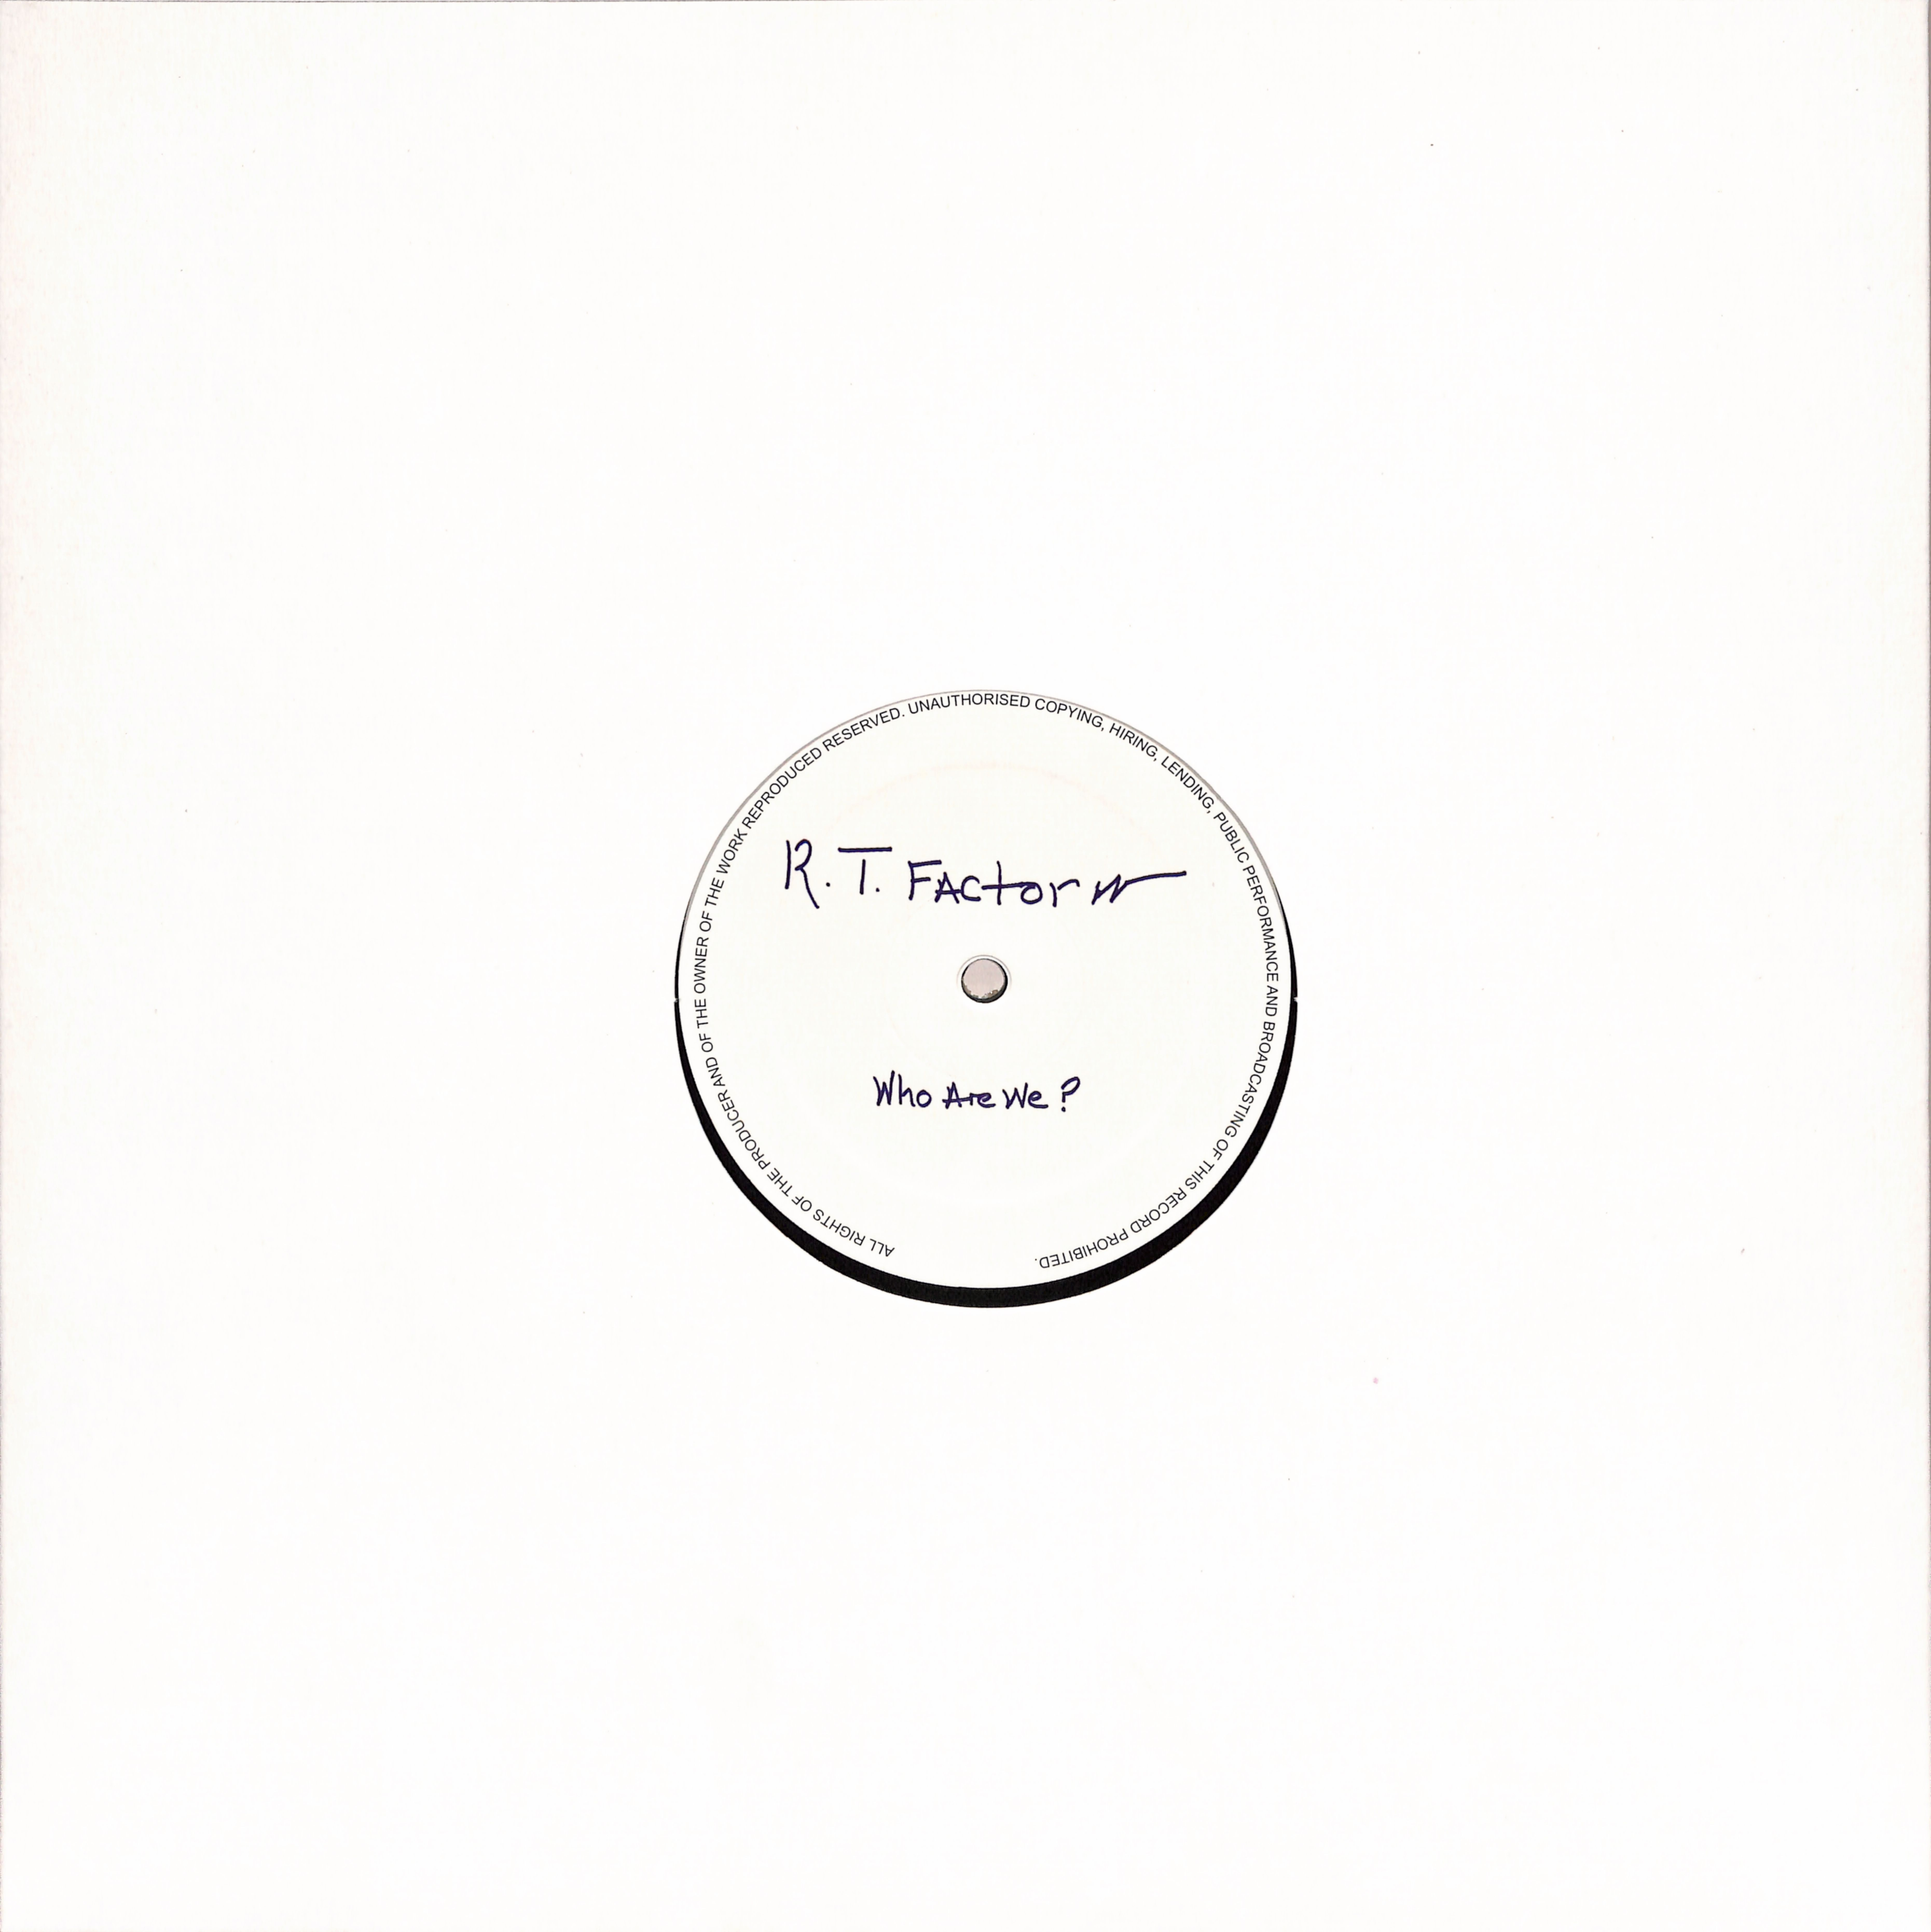 What Does Rt Mean >> R T Factor What Does It Mean Who Are We